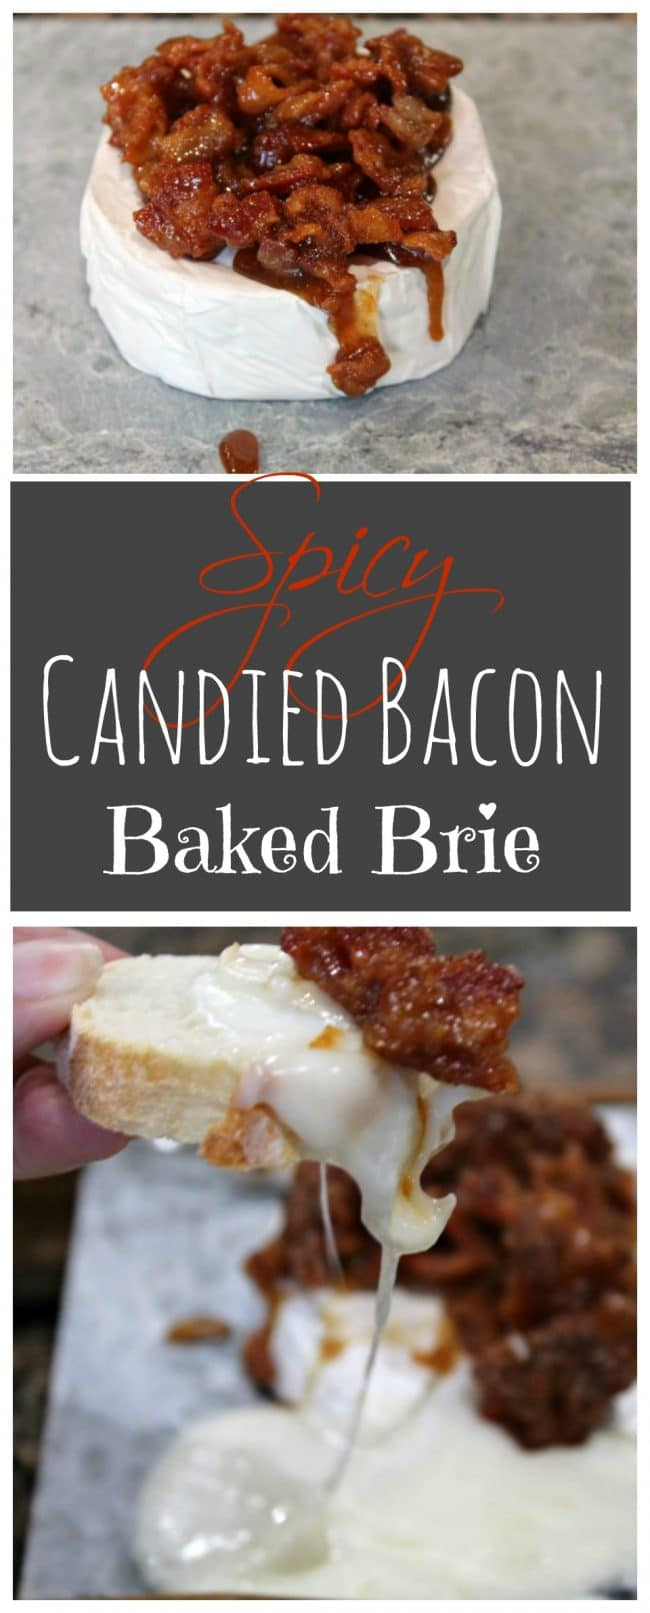 Spicy Candied Bacon Baked Brie - Foody Schmoody Blog ...